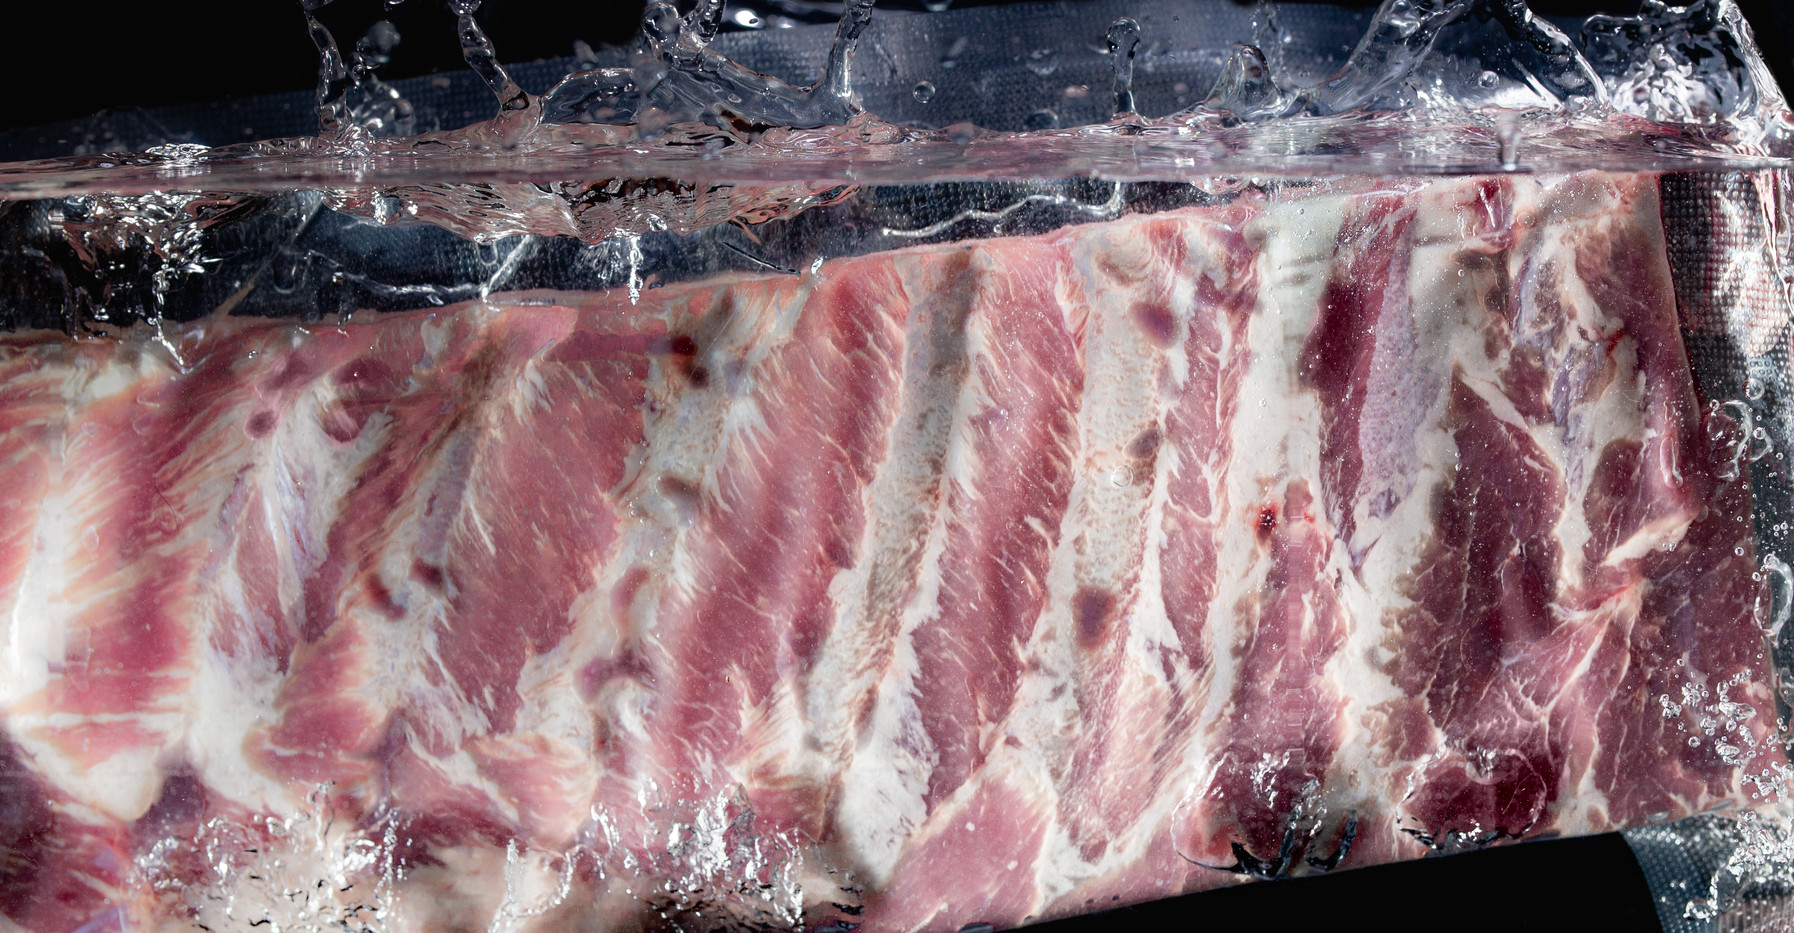 Farmers and Fishermen, Farmers and Fisherman, Farmers and Fishermen Atlanta, Farmers and Fisherman Atlanta, Farmers and Fishermen Atlanta Georgia, Farmers and Fisherman Atlanta Georgia, Atlanta Meat Delivery, Atlanta Food Delivery, Atlanta Georgia Meat Delivery, Atlanta Georgia Food Delivery, butcher, butcher shop, butcher shop Atlanta, butcher shop Atlanta Georgia, meat home delivery, meat home delivery Atlanta, meat home delivery service, pork delivery, meat home delivery service Atlanta, deliver to your area, fish home delivery, fish home delivery Atlanta, fish home delivery Atlanta Georgia, fish home delivery service, fish home delivery service Atlanta, seafood home delivery, seafood home delivery Atlanta, seafood home delivery Atlanta Georgia, seafood home delivery service, seafood home delivery service Atlanta, beef home delivery, beef home delivery Atlanta, beef home delivery Atlanta Georgia, beef home delivery service, beef home delivery service Atlanta, Meat Delivery Atlanta,